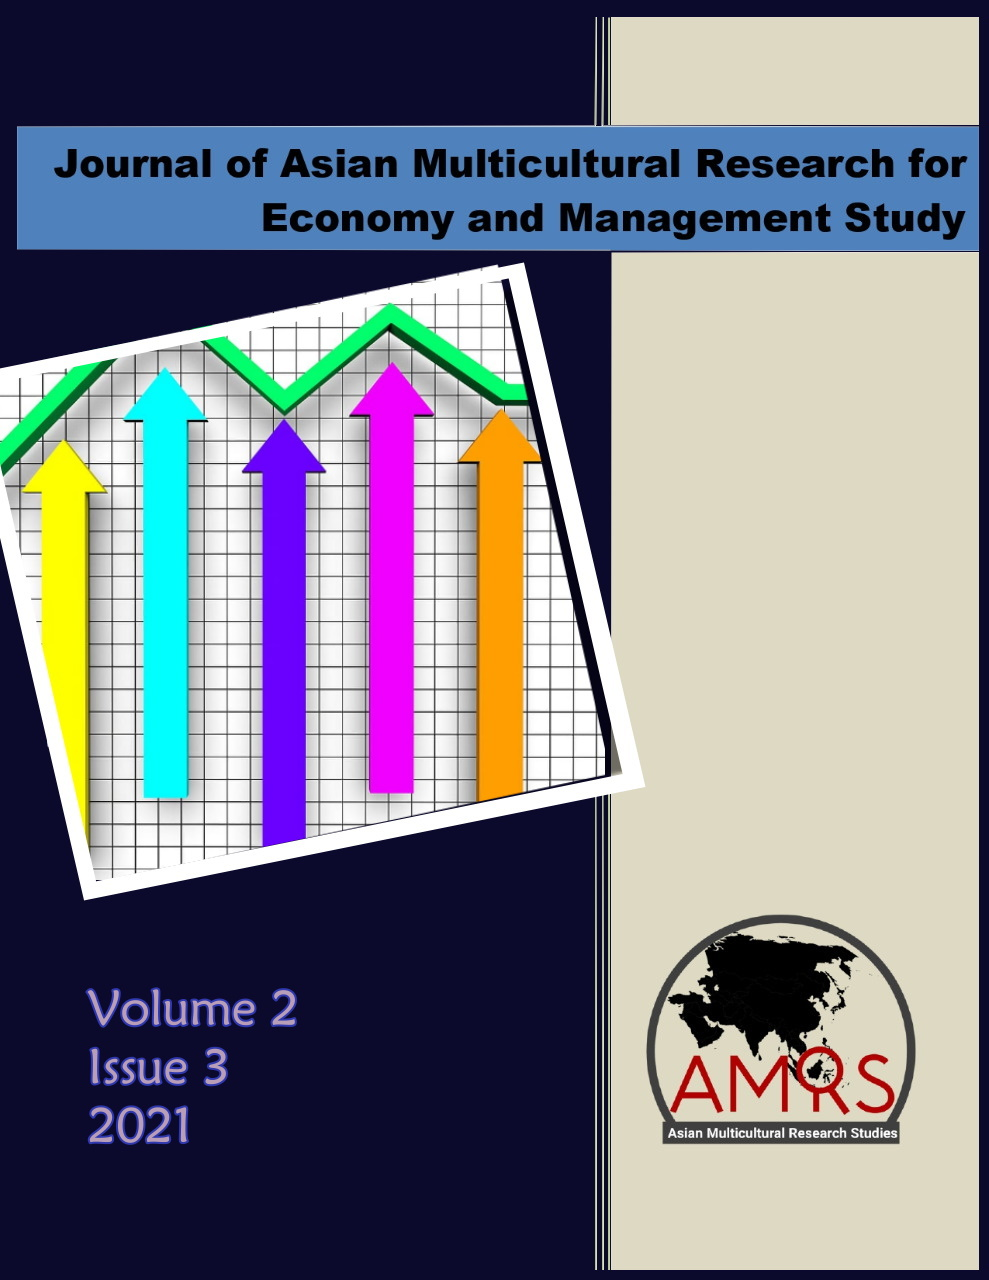 View Vol. 2 No. 3 (2021): Journal of Asian Multicultural Research for Economy and Management Study